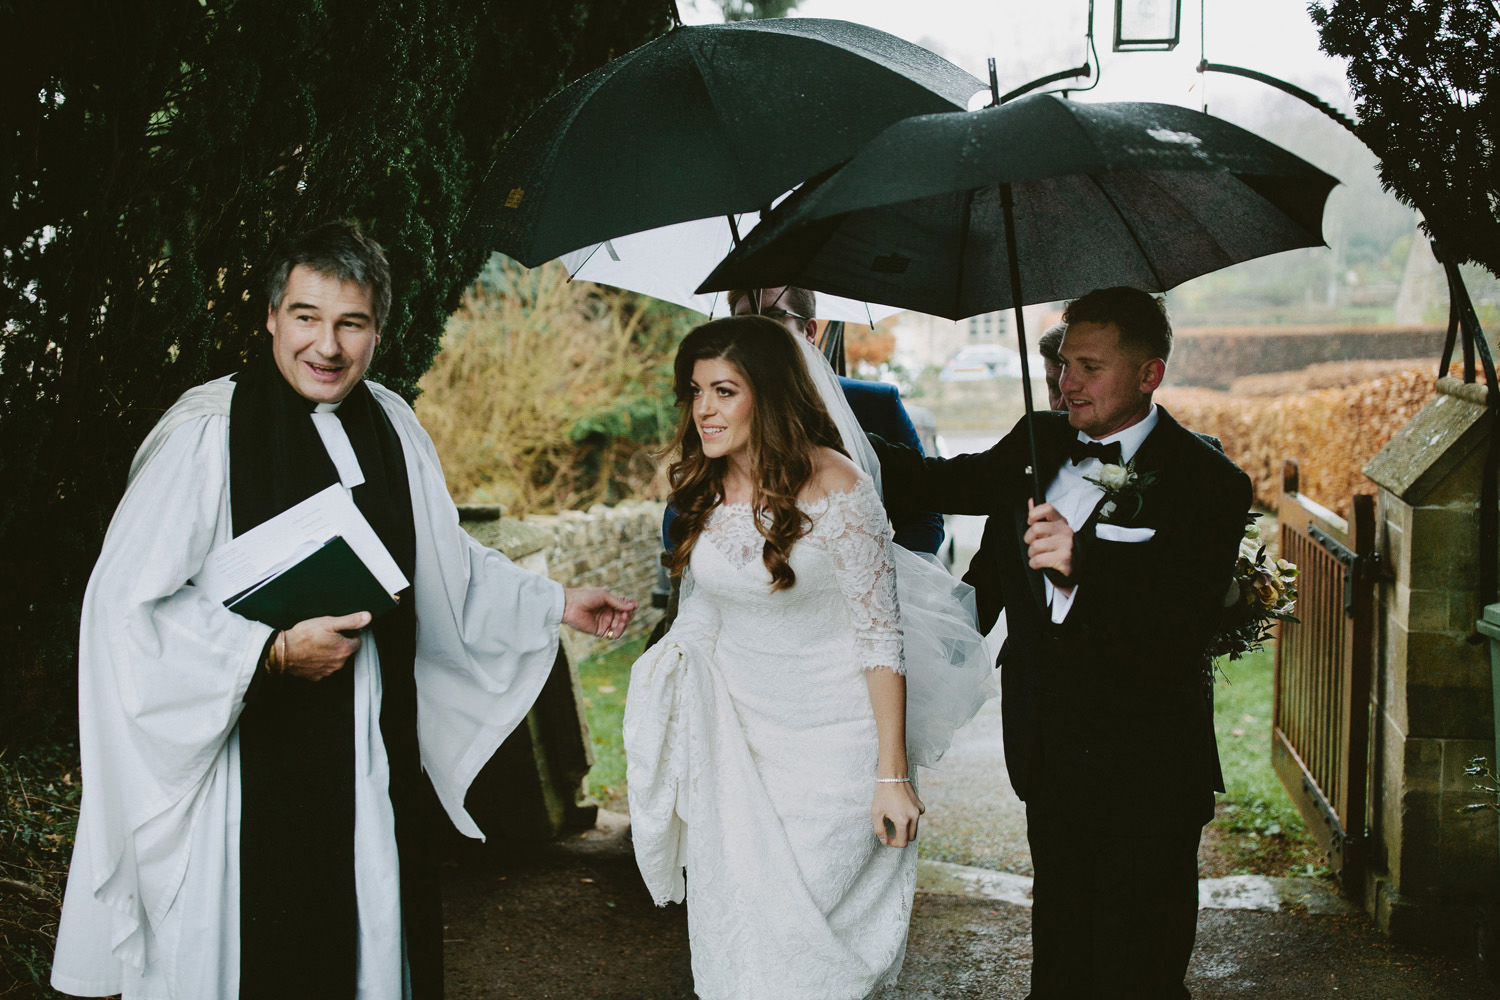 bride arriving at church with umbrellas